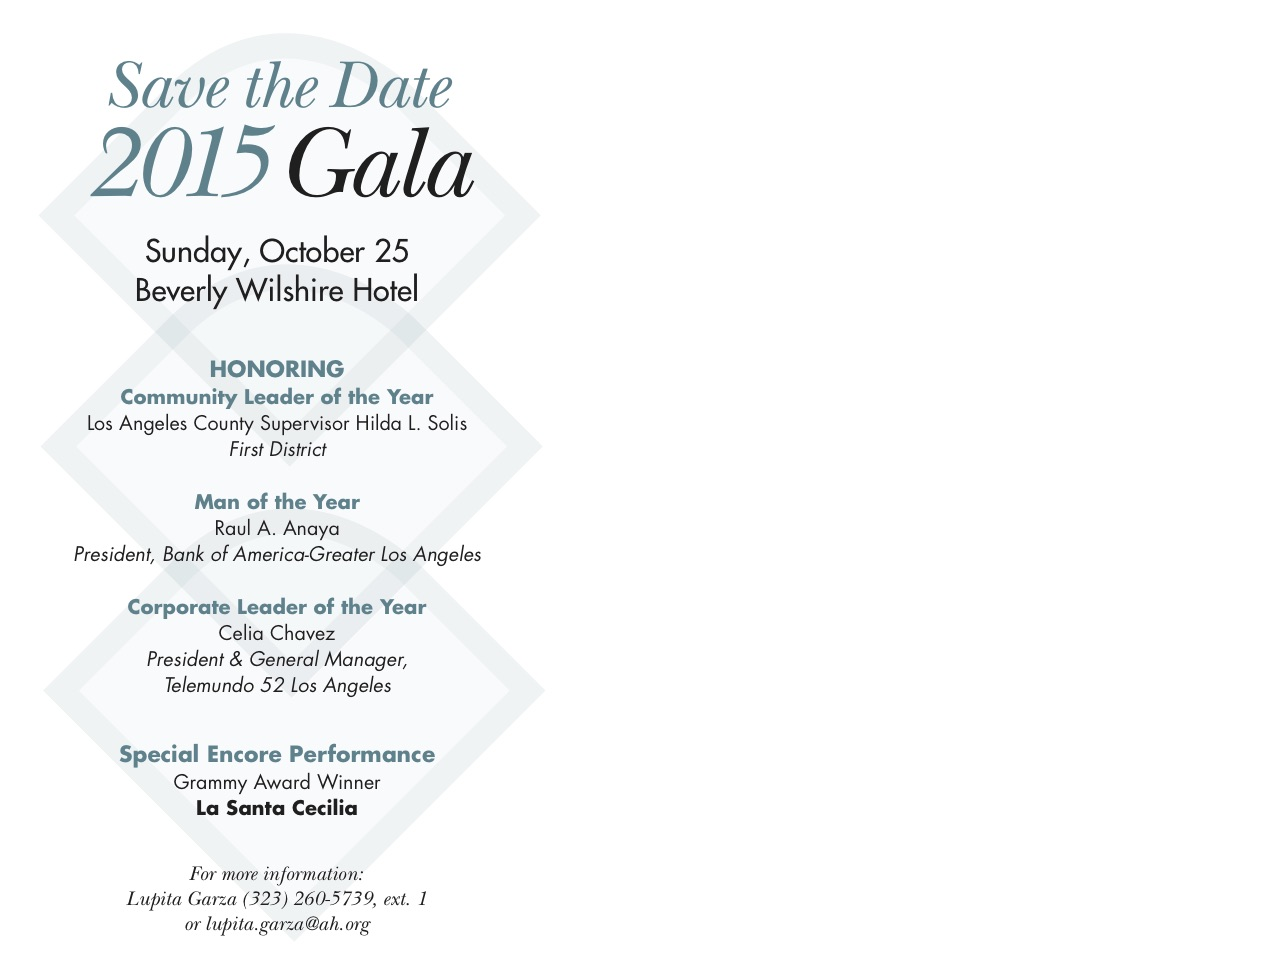 2015 gala save the date